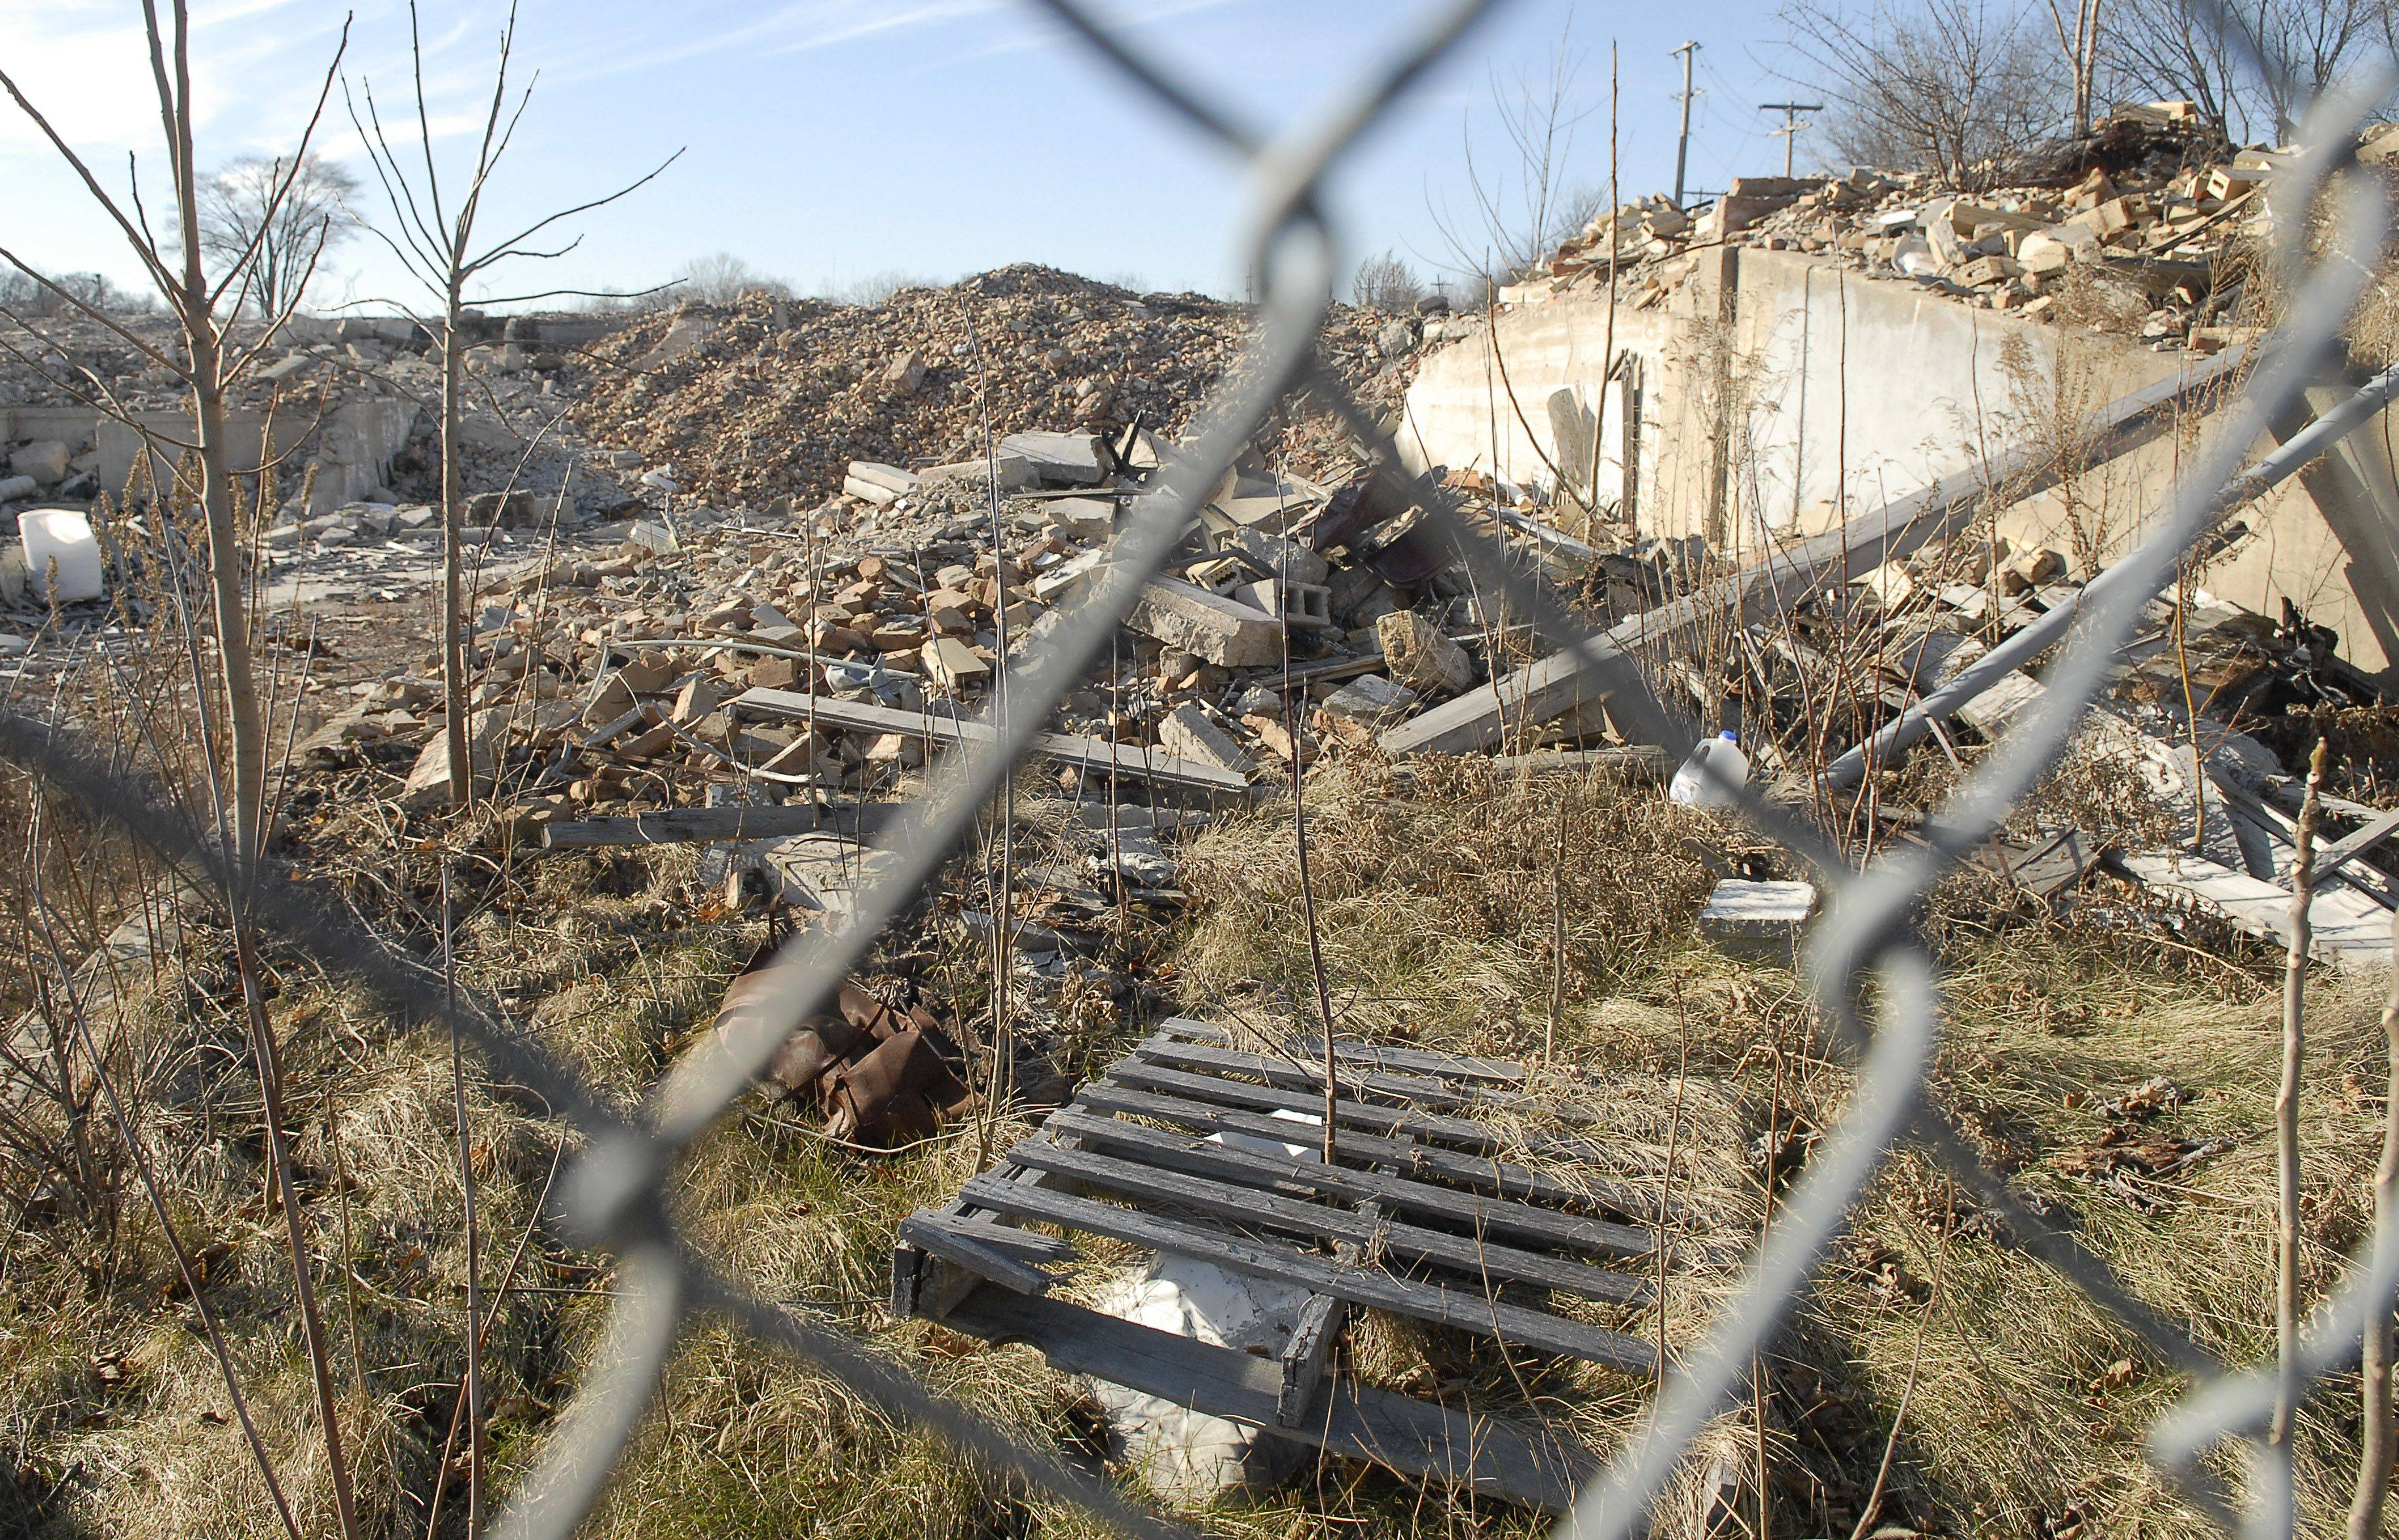 Developers of the old Applied Composites building site in St. Charles have hired an environmental cleanup firm to handle removal of polluted soil.